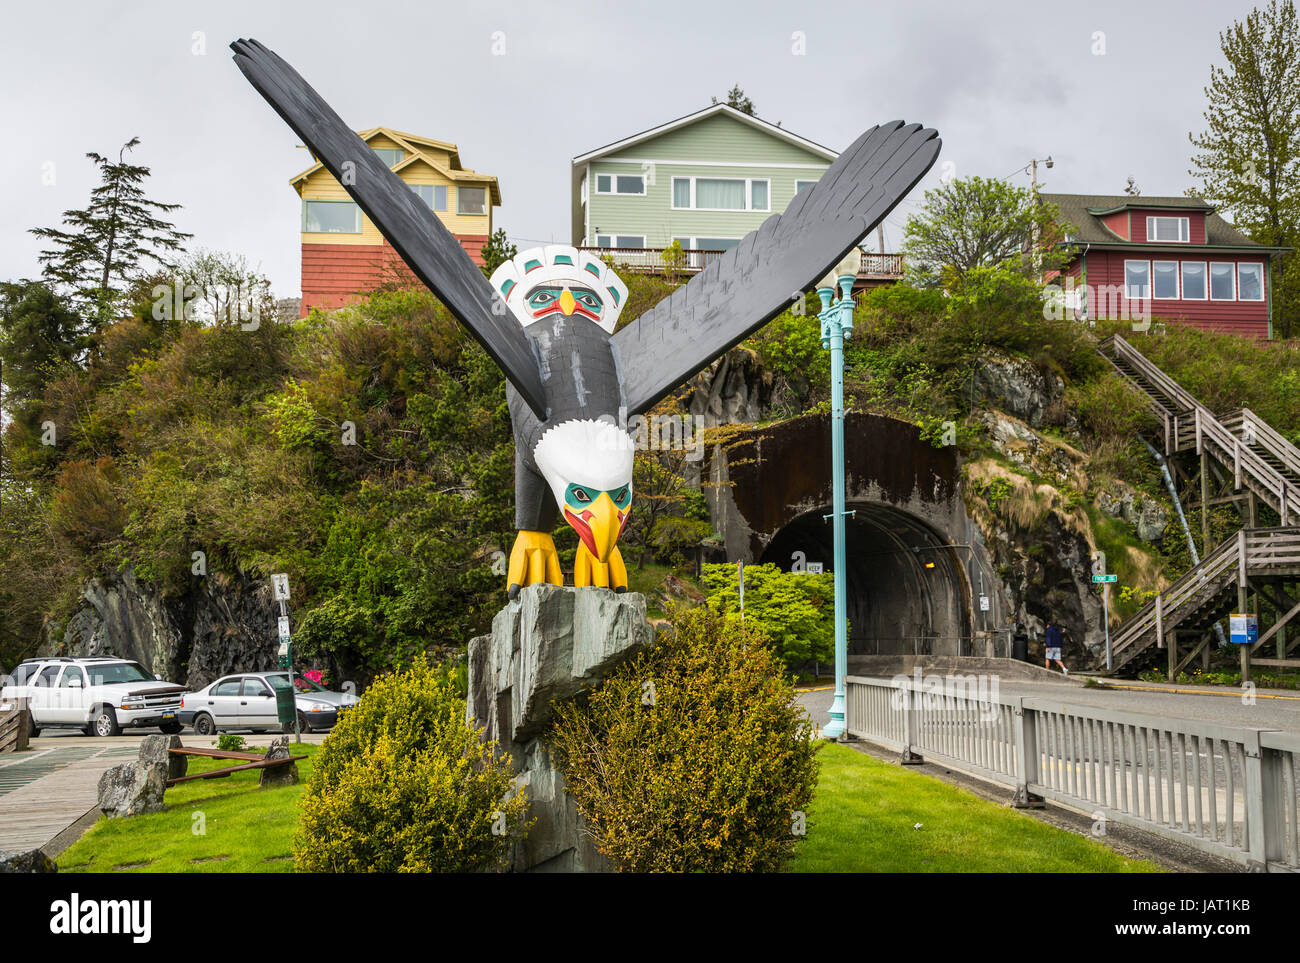 A bald eagle wood carving and park in the city of Ketchikan, Alaska, USA. - Stock Image